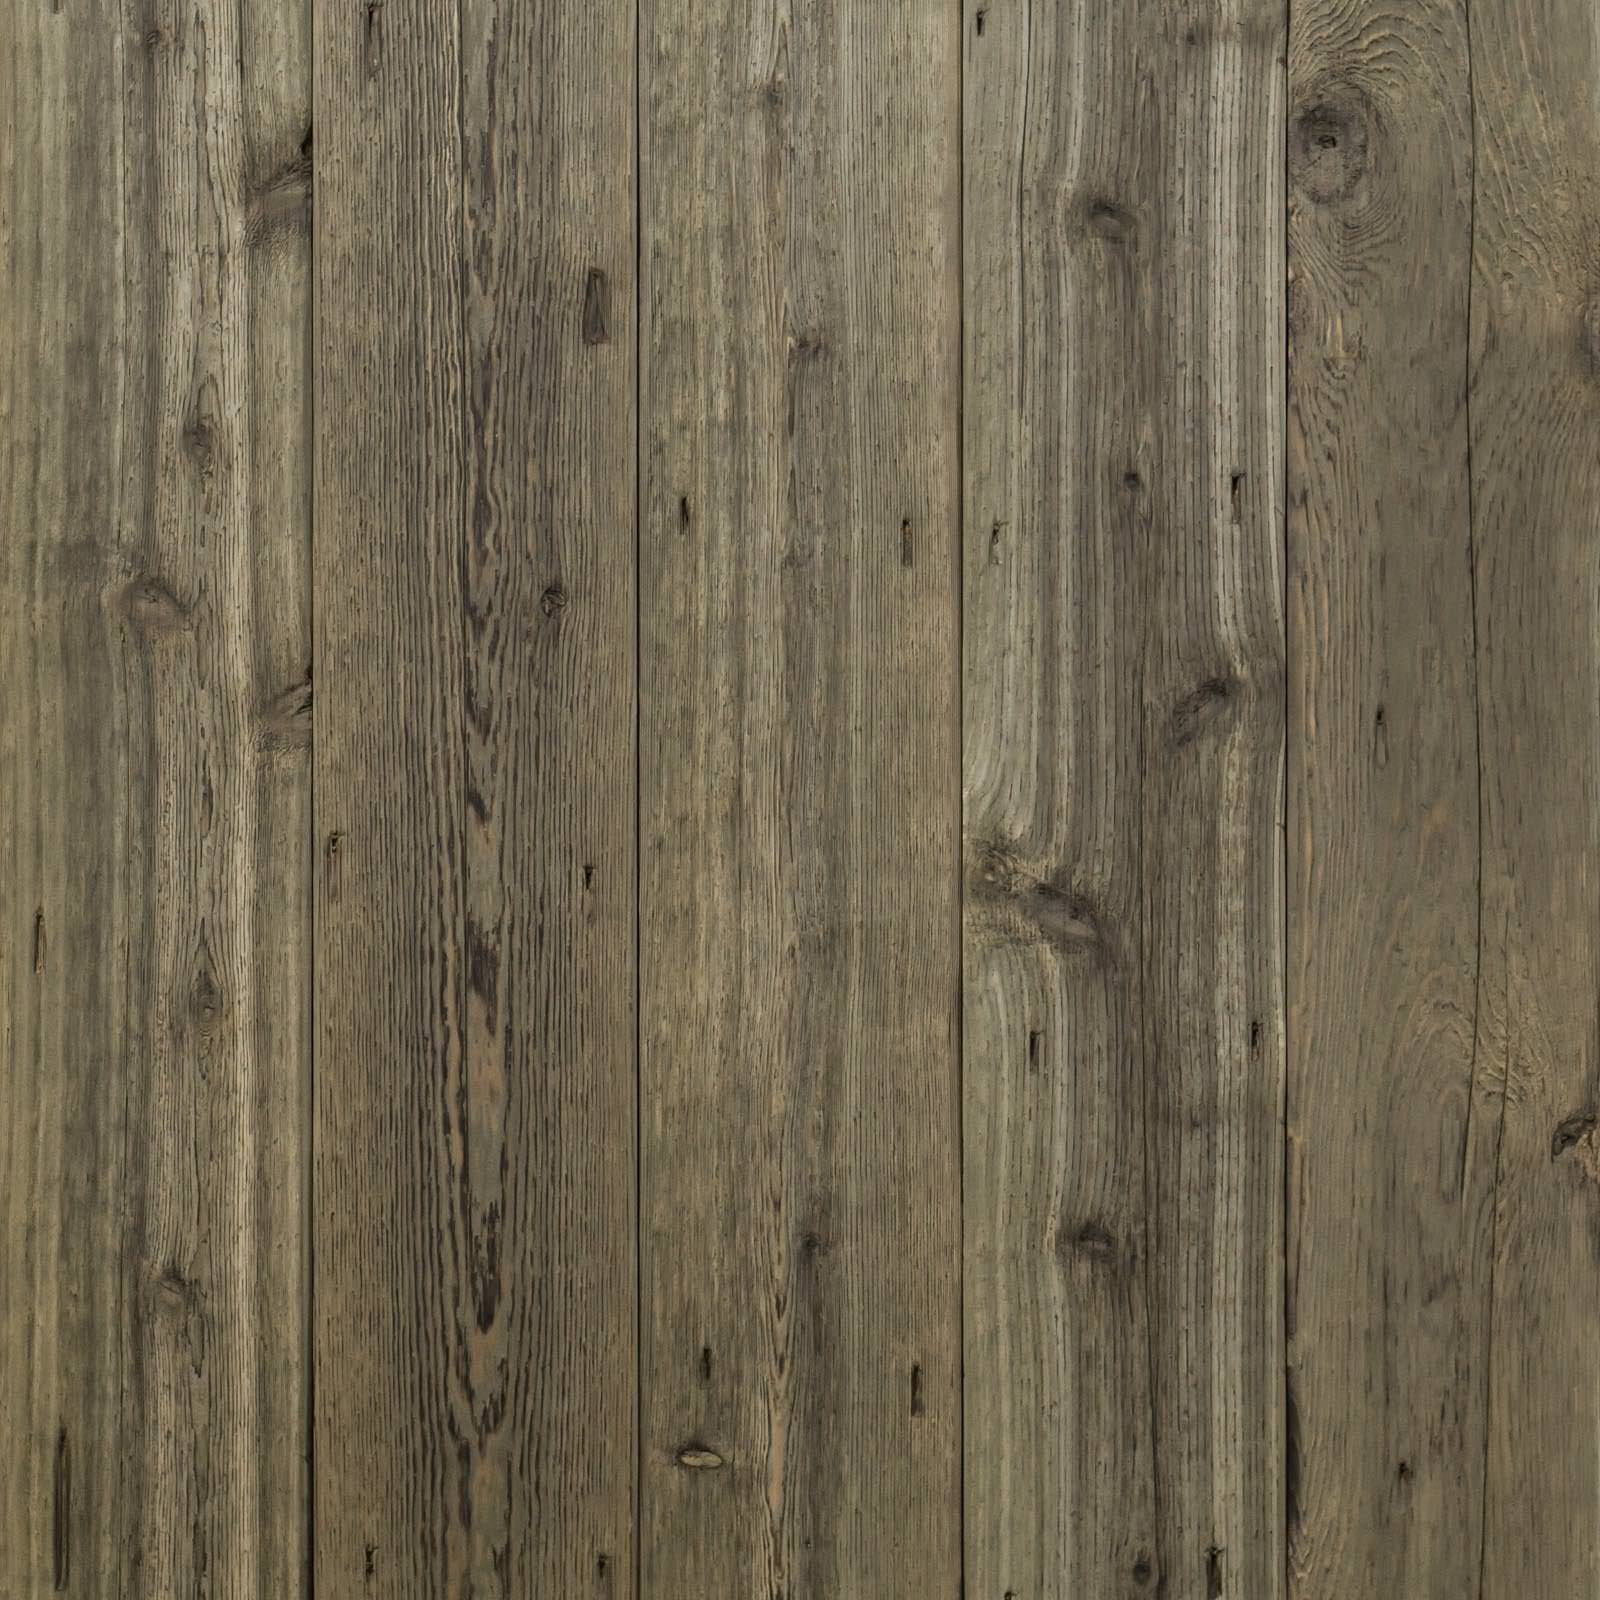 Driftwood <br>Distressed